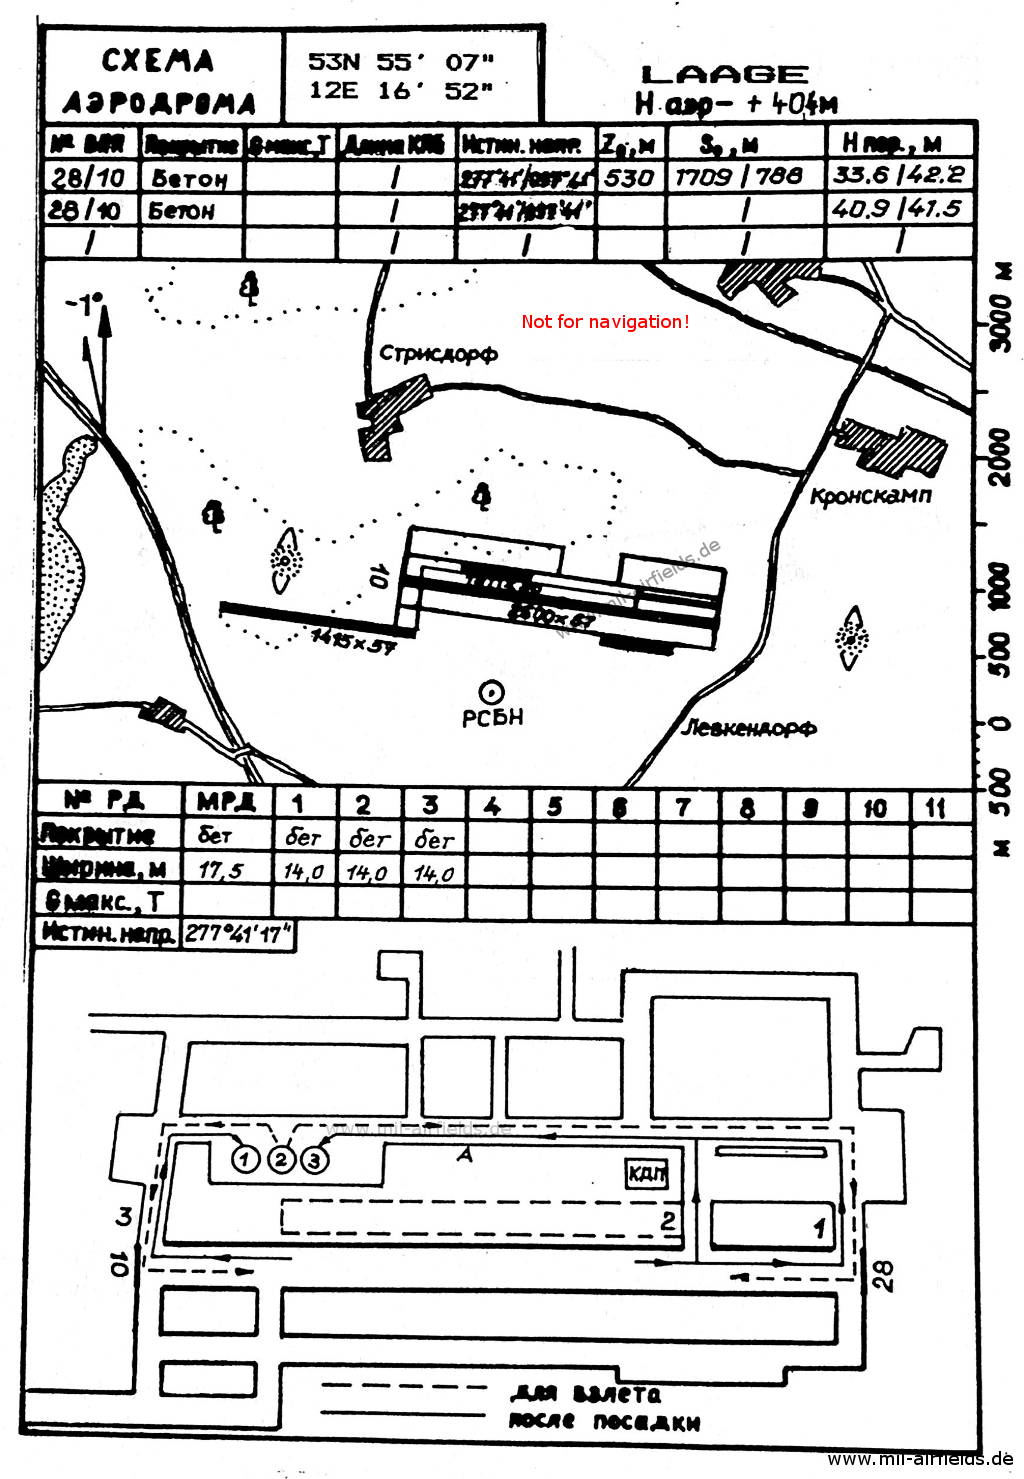 Map of Laage Airfield 1989